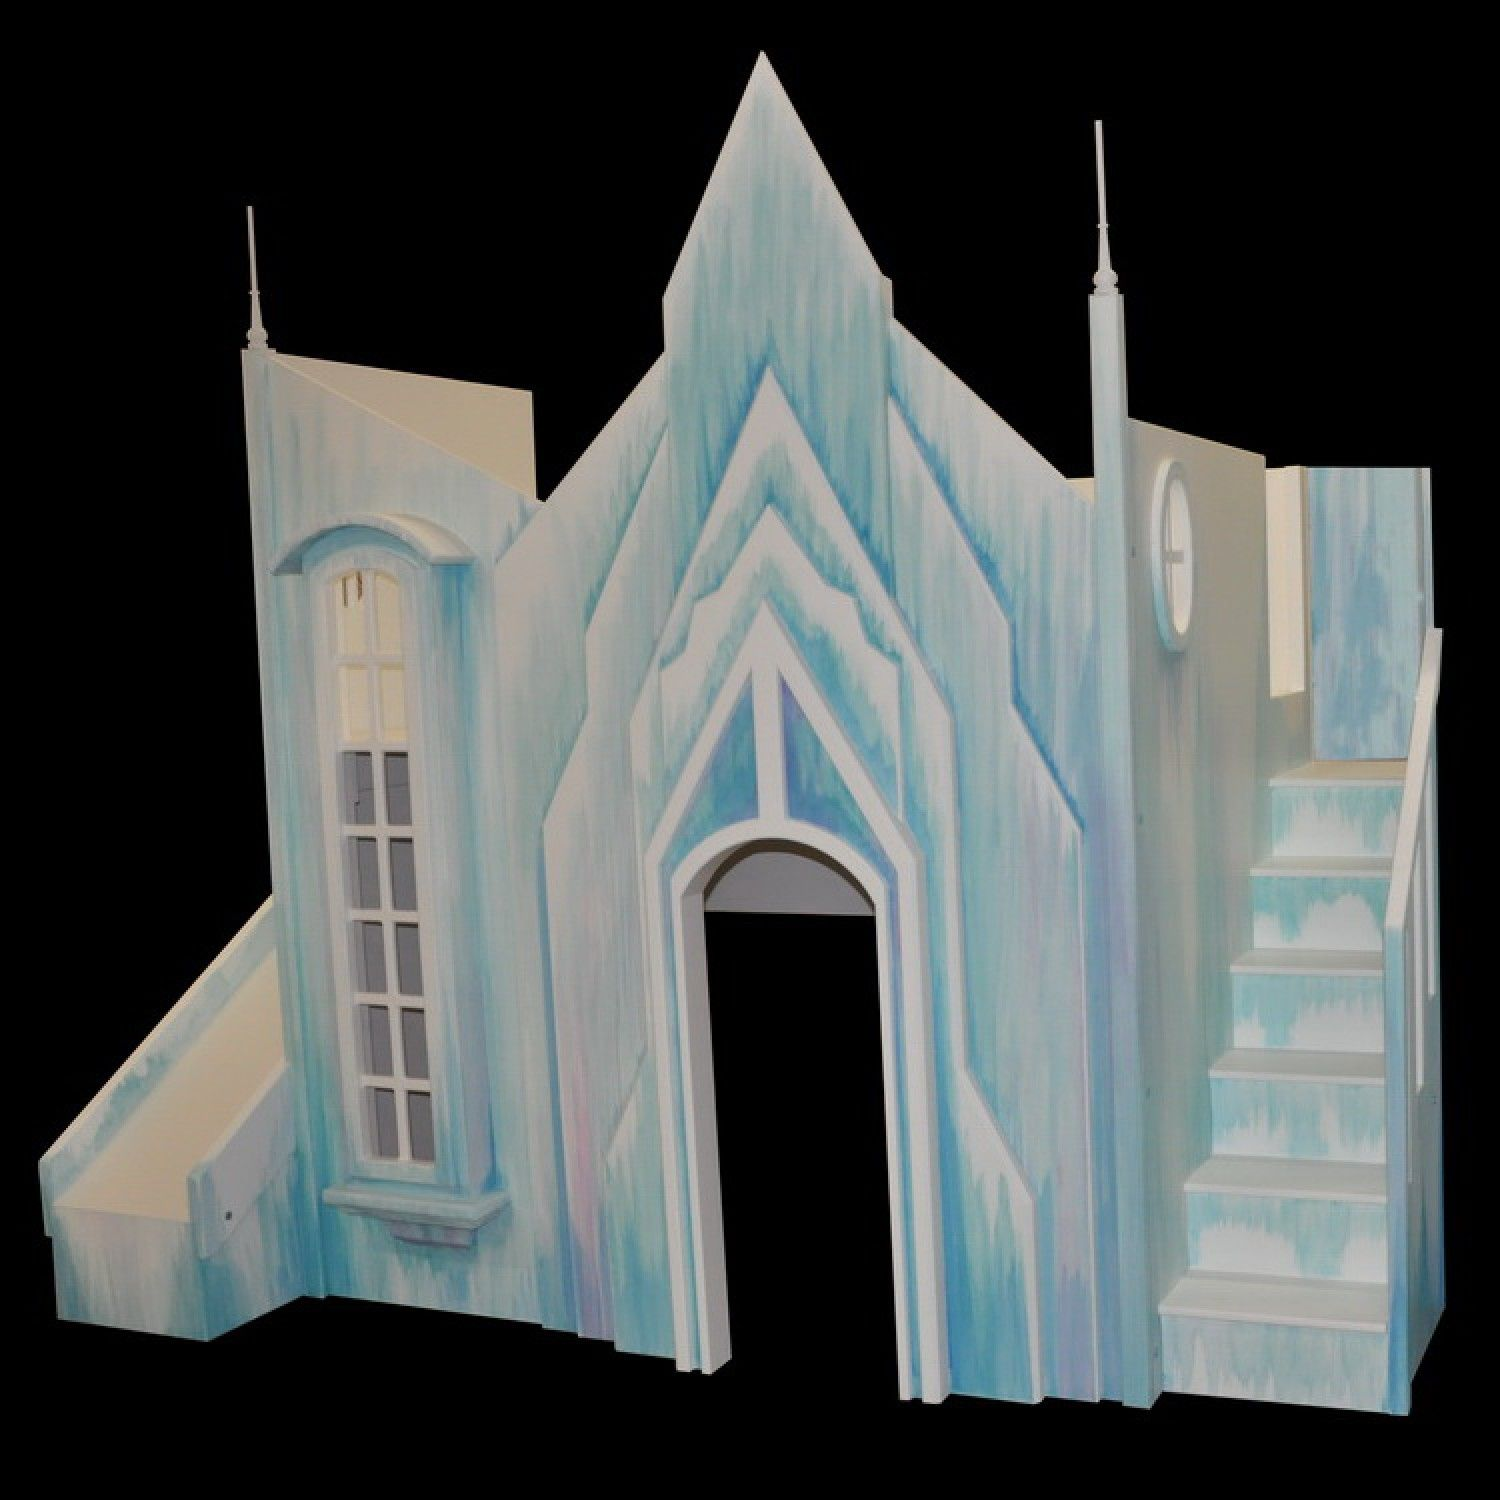 Frozen Ice Castle Bunk Bed Castle Beds Beds